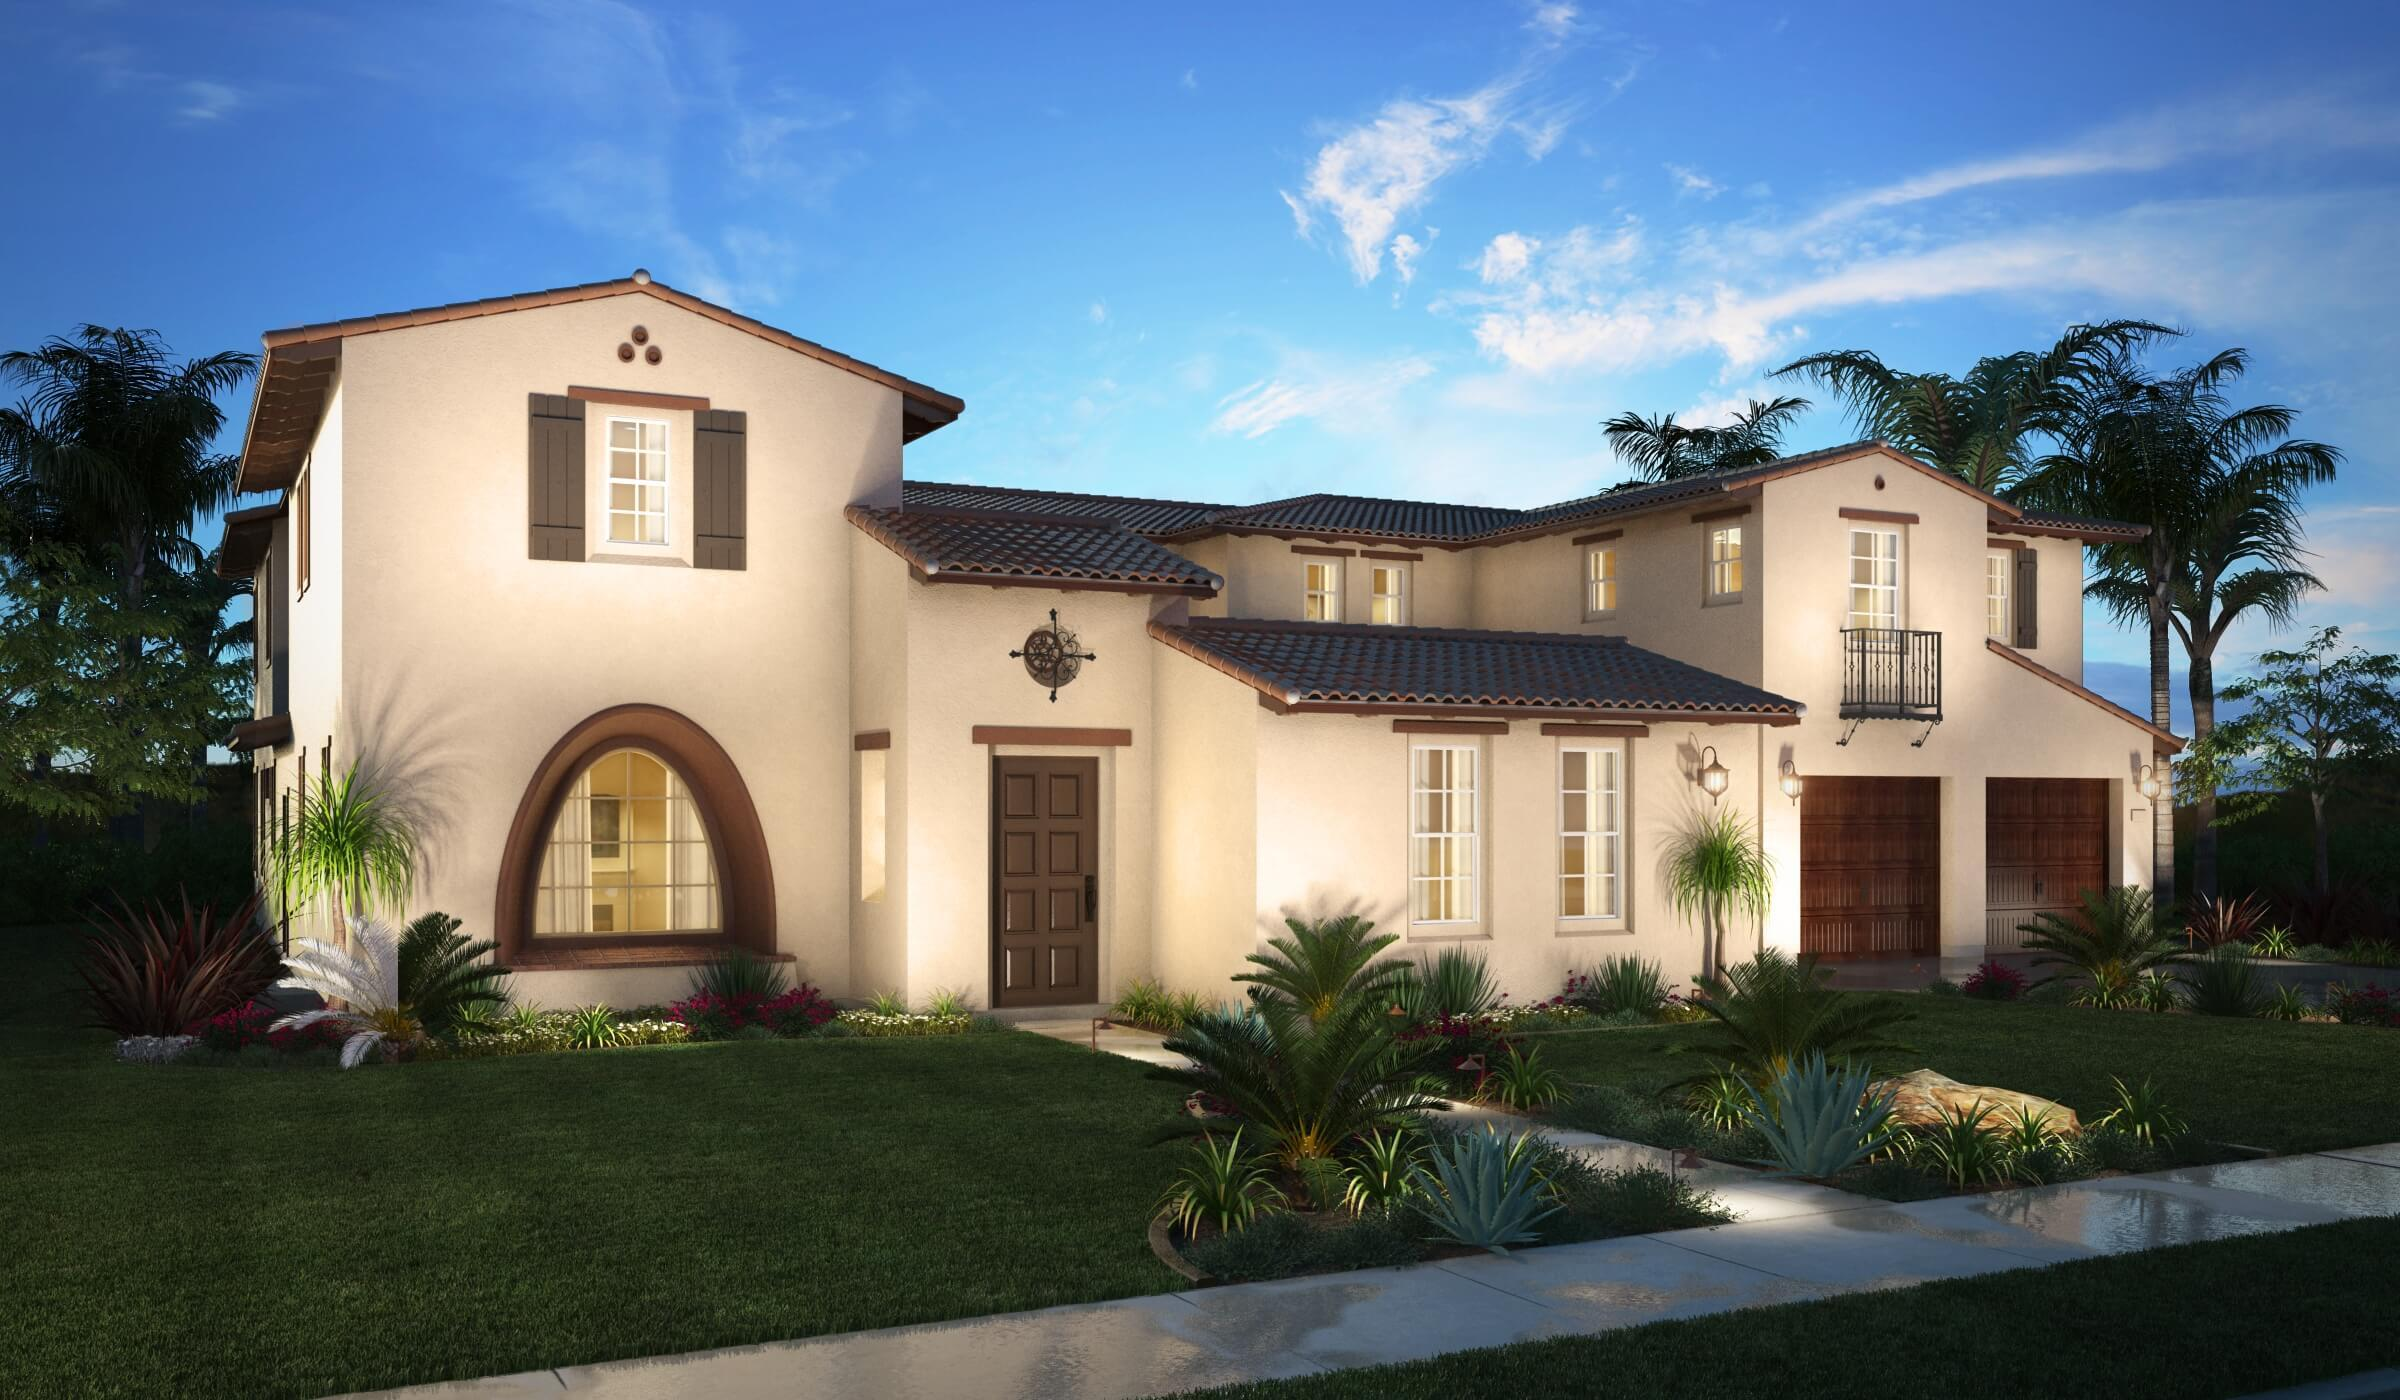 Additional photo for property listing at Residence 5 253 Clementine Ct Glendora, California 91741 United States